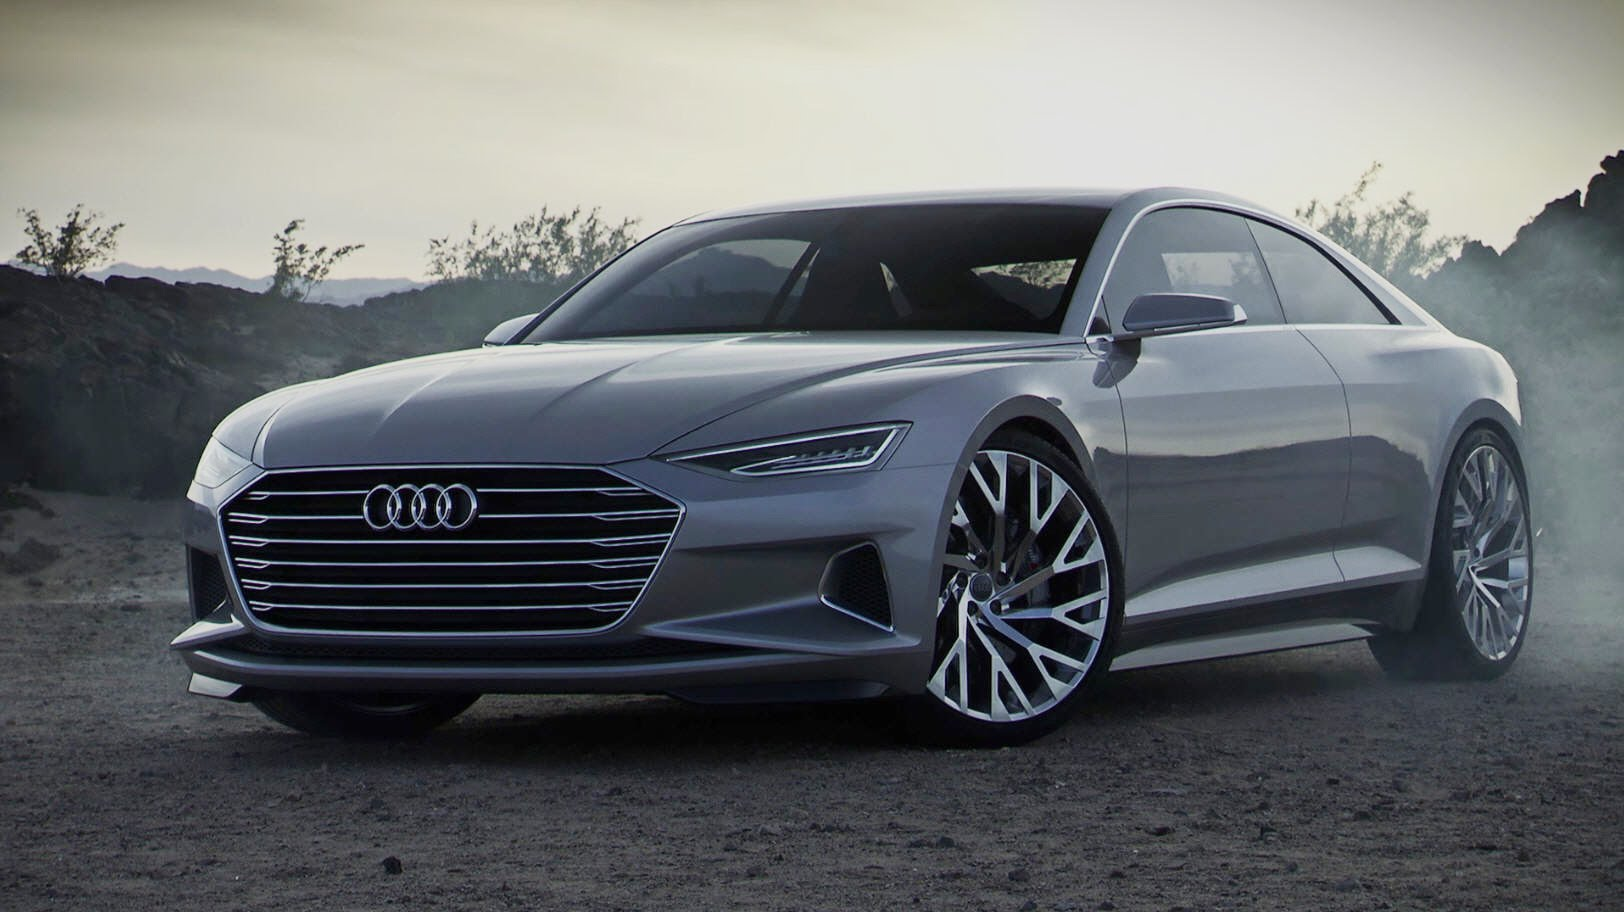 2018 Audi Prologue Avant Concept photo - 1